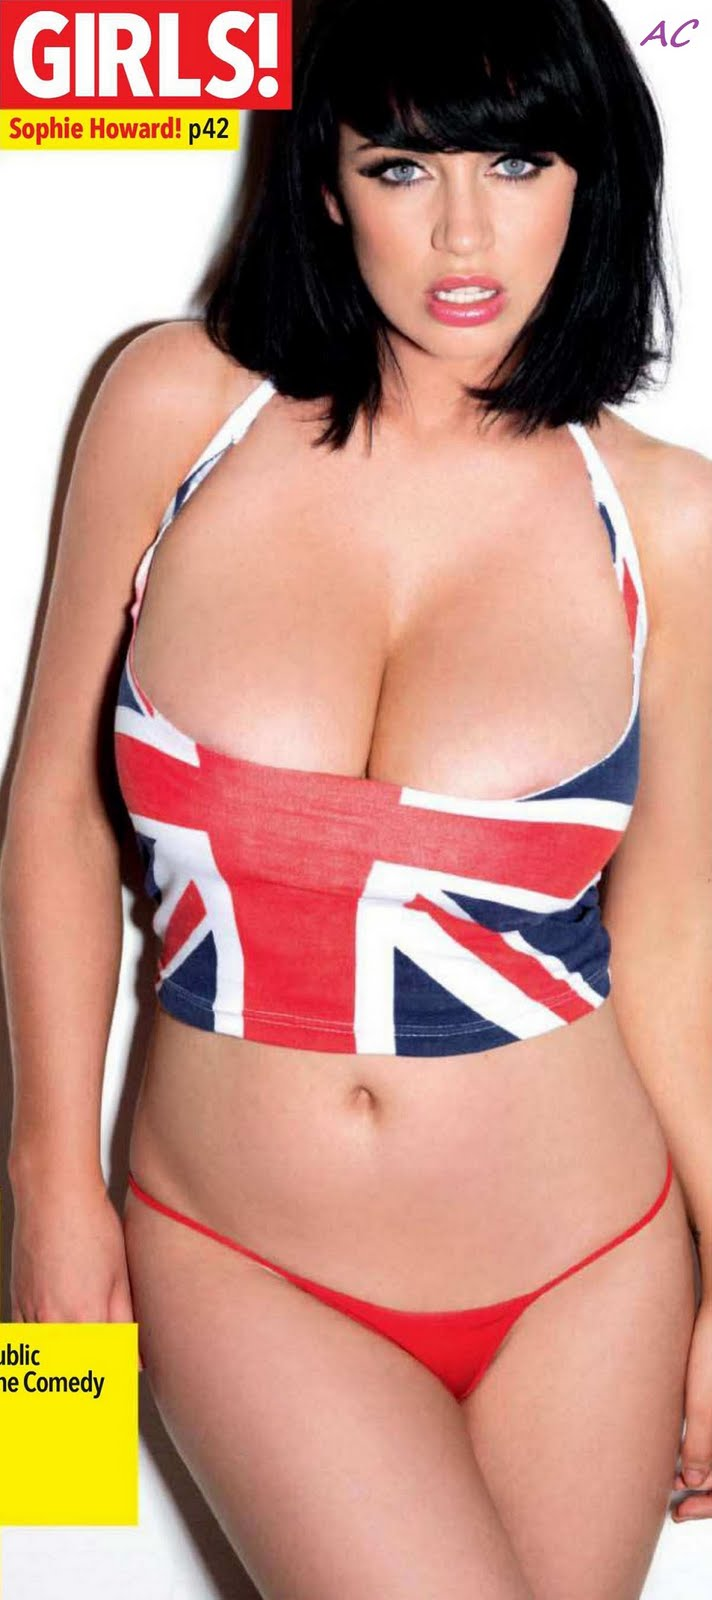 blogspot Sophie howard